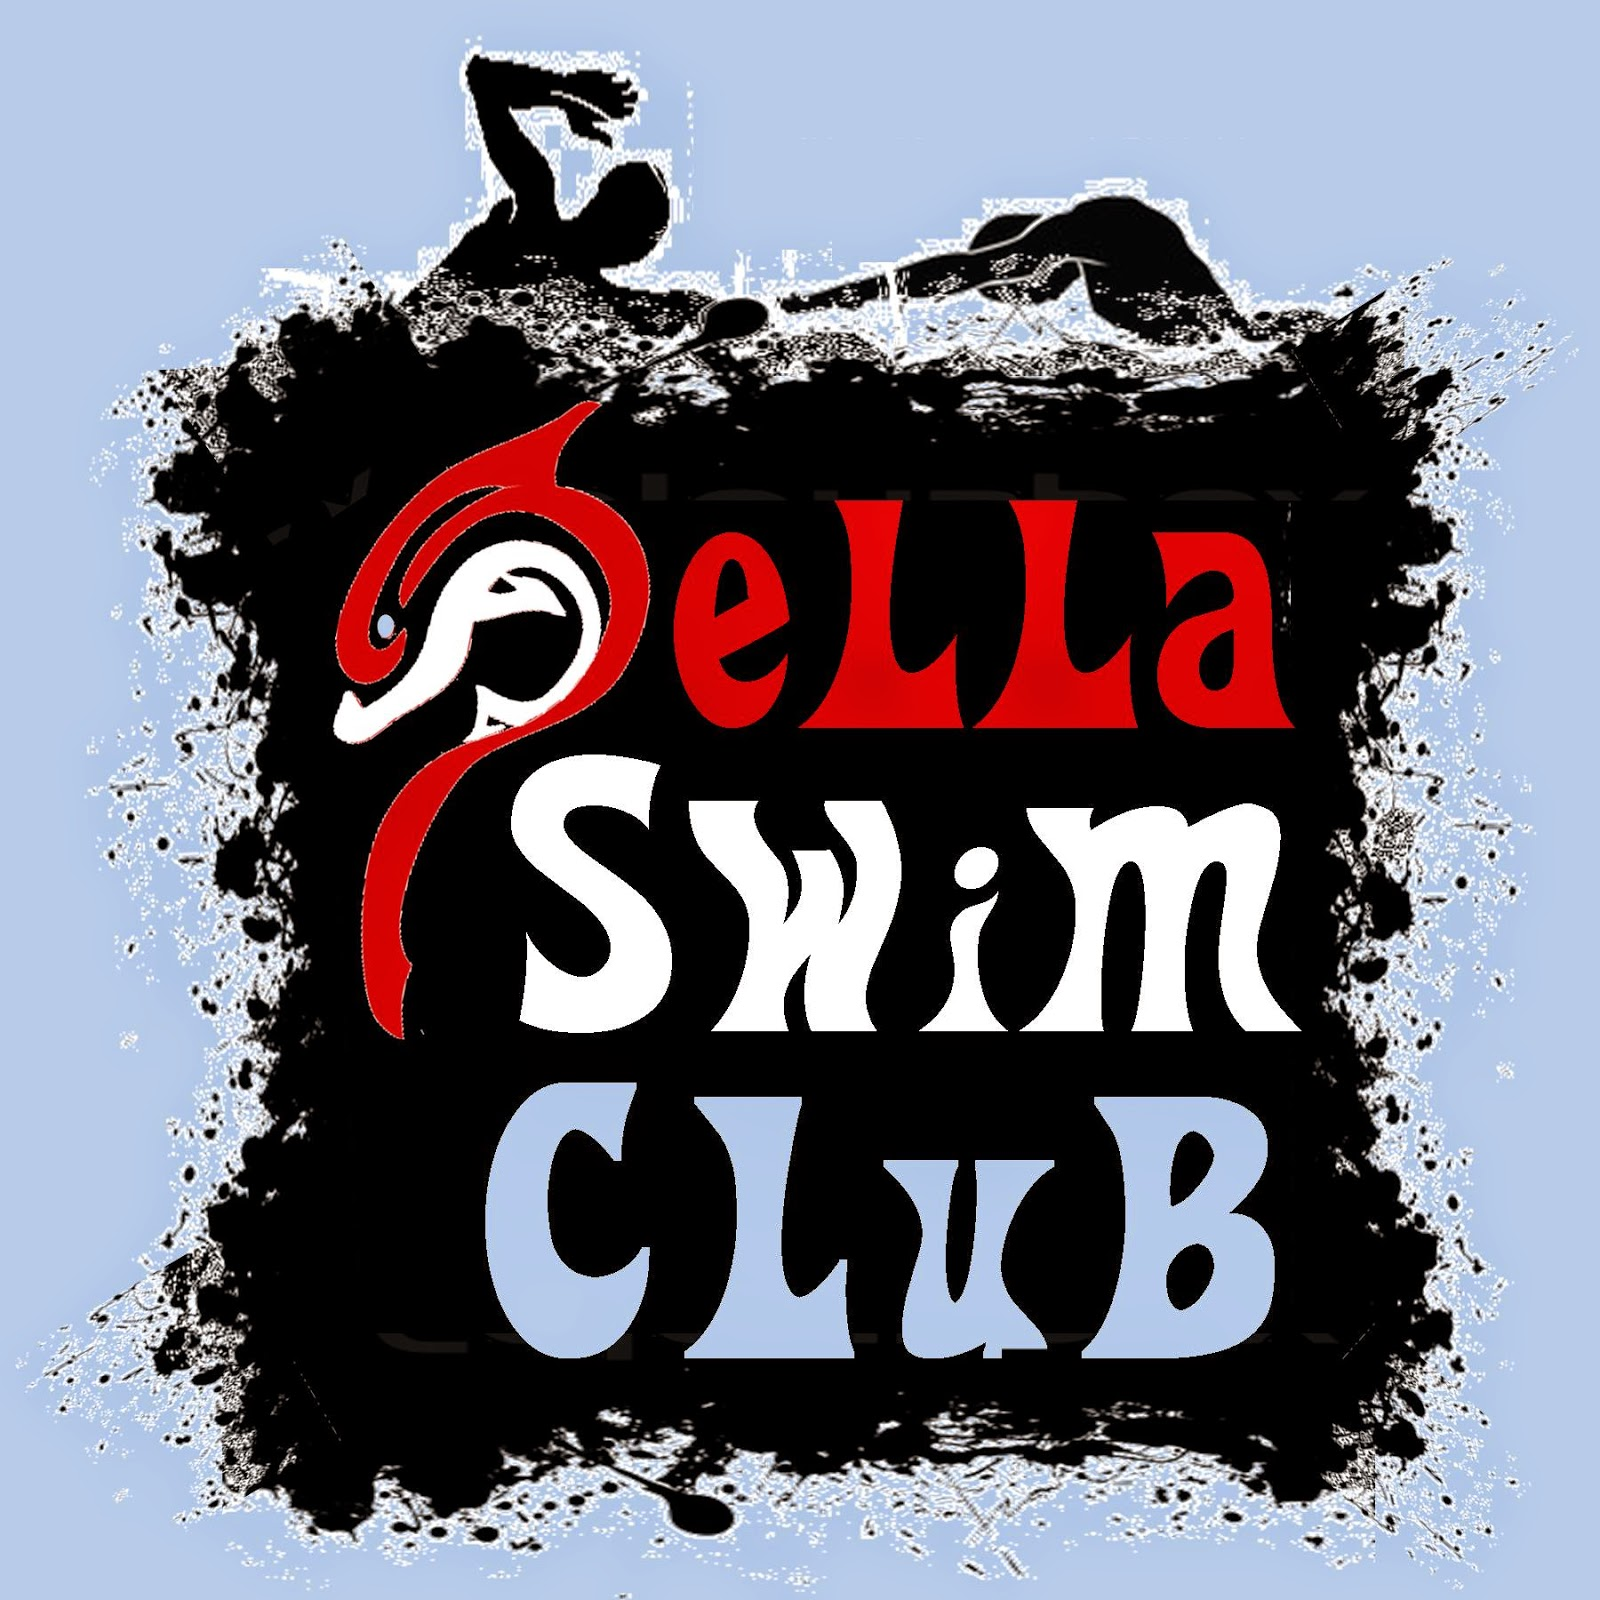 Shirt design usa -  To Apply My Design Background When Creating T Shirt Designs For Groups And Organizations This Is Favorite Created For Our Children S Usa Swimming Club